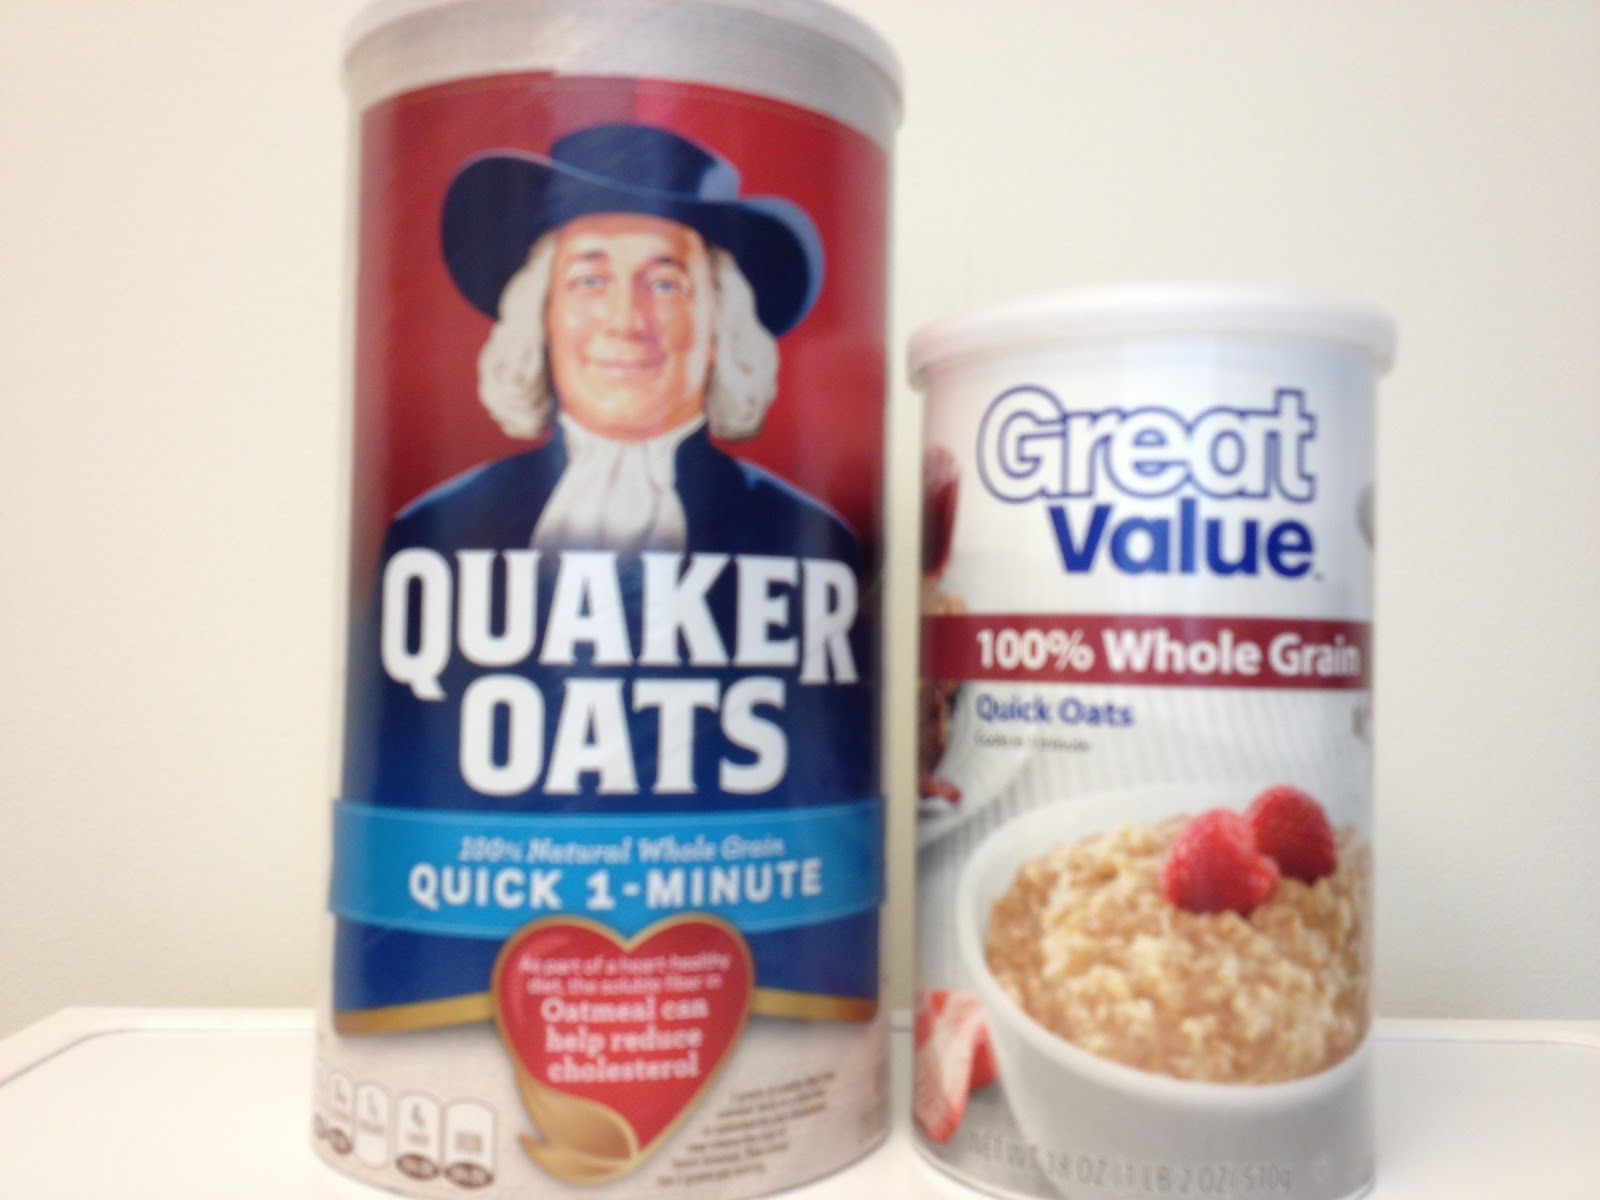 Oat meal brands